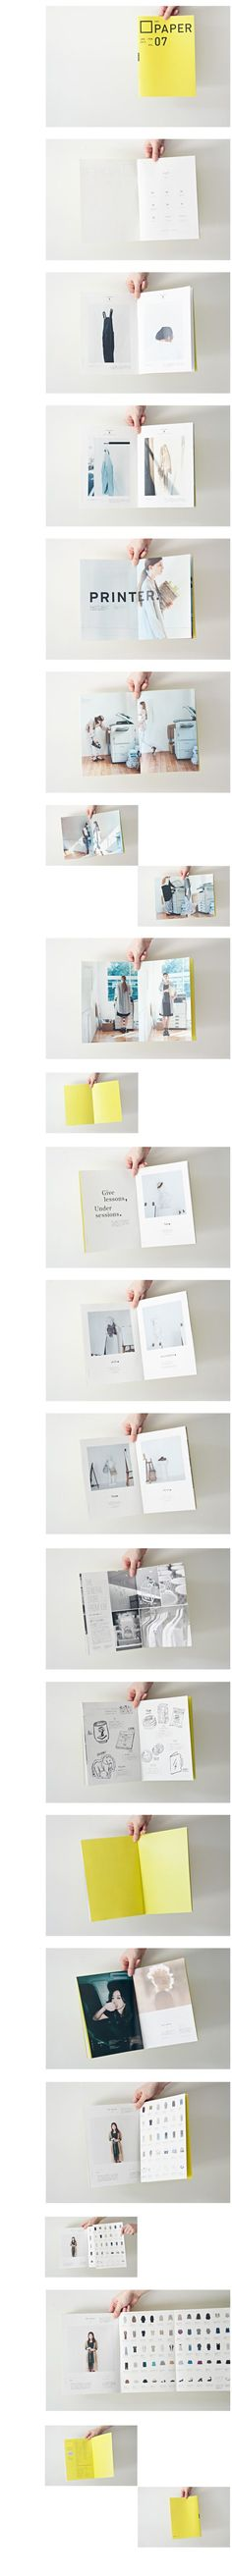 As I wear a lot of white this is one of the main inspirations for my design to use white space. This is to create a clean look that I use in my appearance and design work. It's also to frame the work and allow the type to breath. This book is w prefect example of how I want my book to look and flow.: